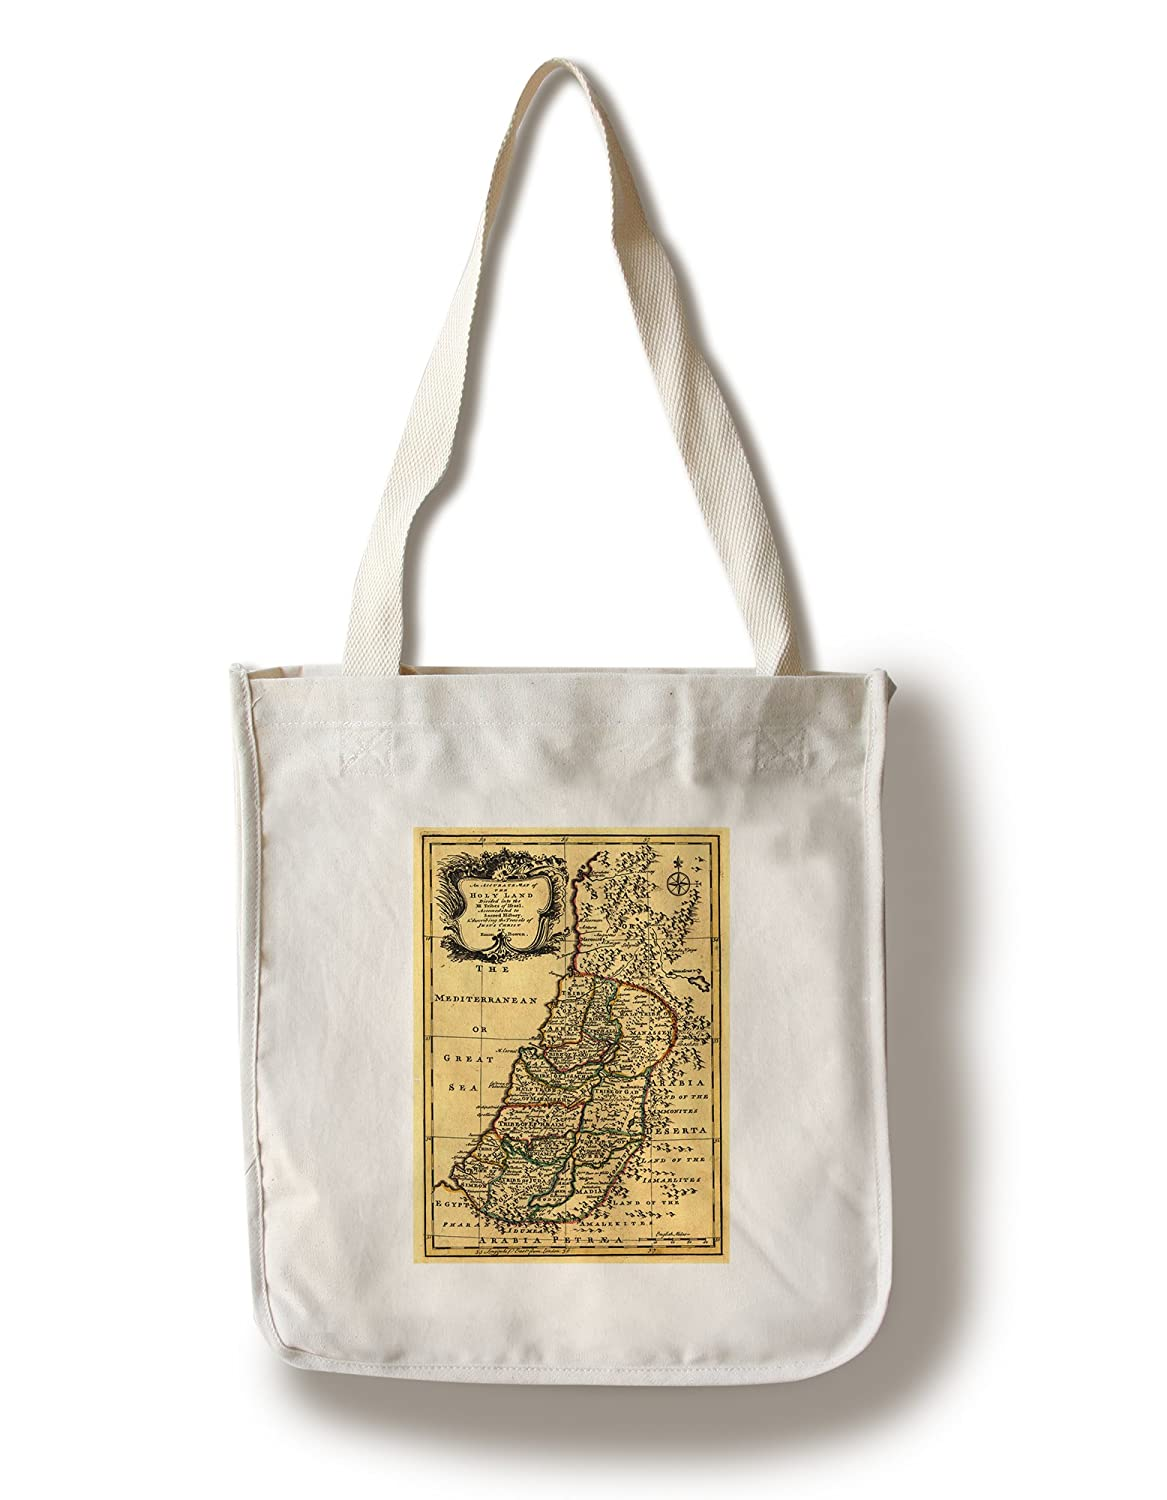 【楽天スーパーセール】 The部族のin Palestine – パノラマMap Canvas Palestine パノラマMap Tote Bag Bag LANT-19911-TT B01841K5TM Canvas Tote Bag, コロンディー:1067c514 --- arianechie.dominiotemporario.com